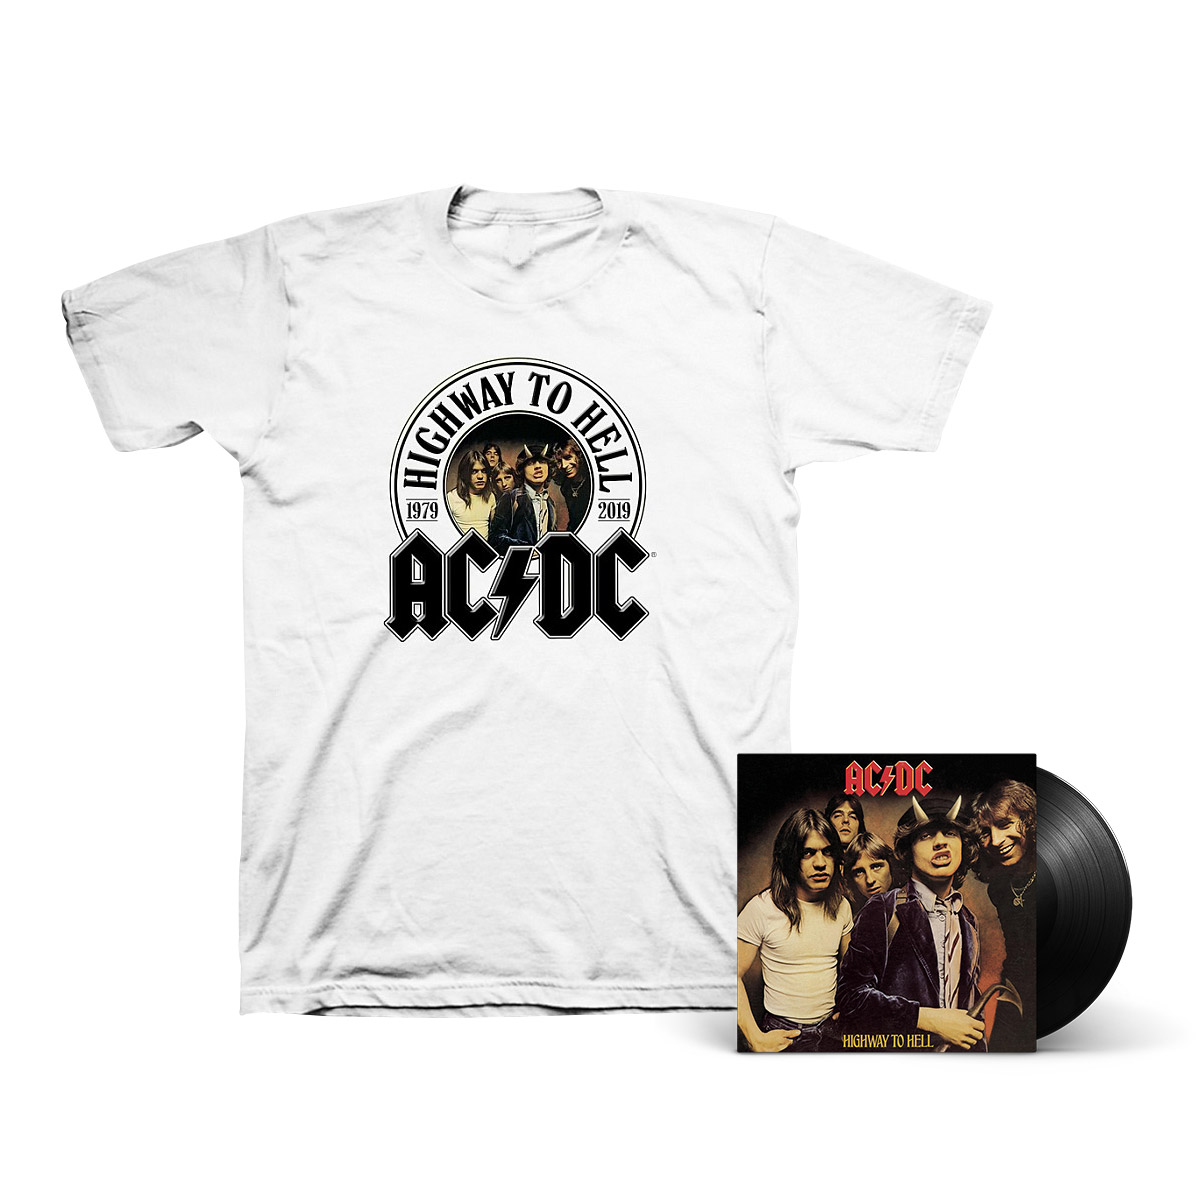 Highway To Hell LP & 40th Anniversary T-Shirt Bundle